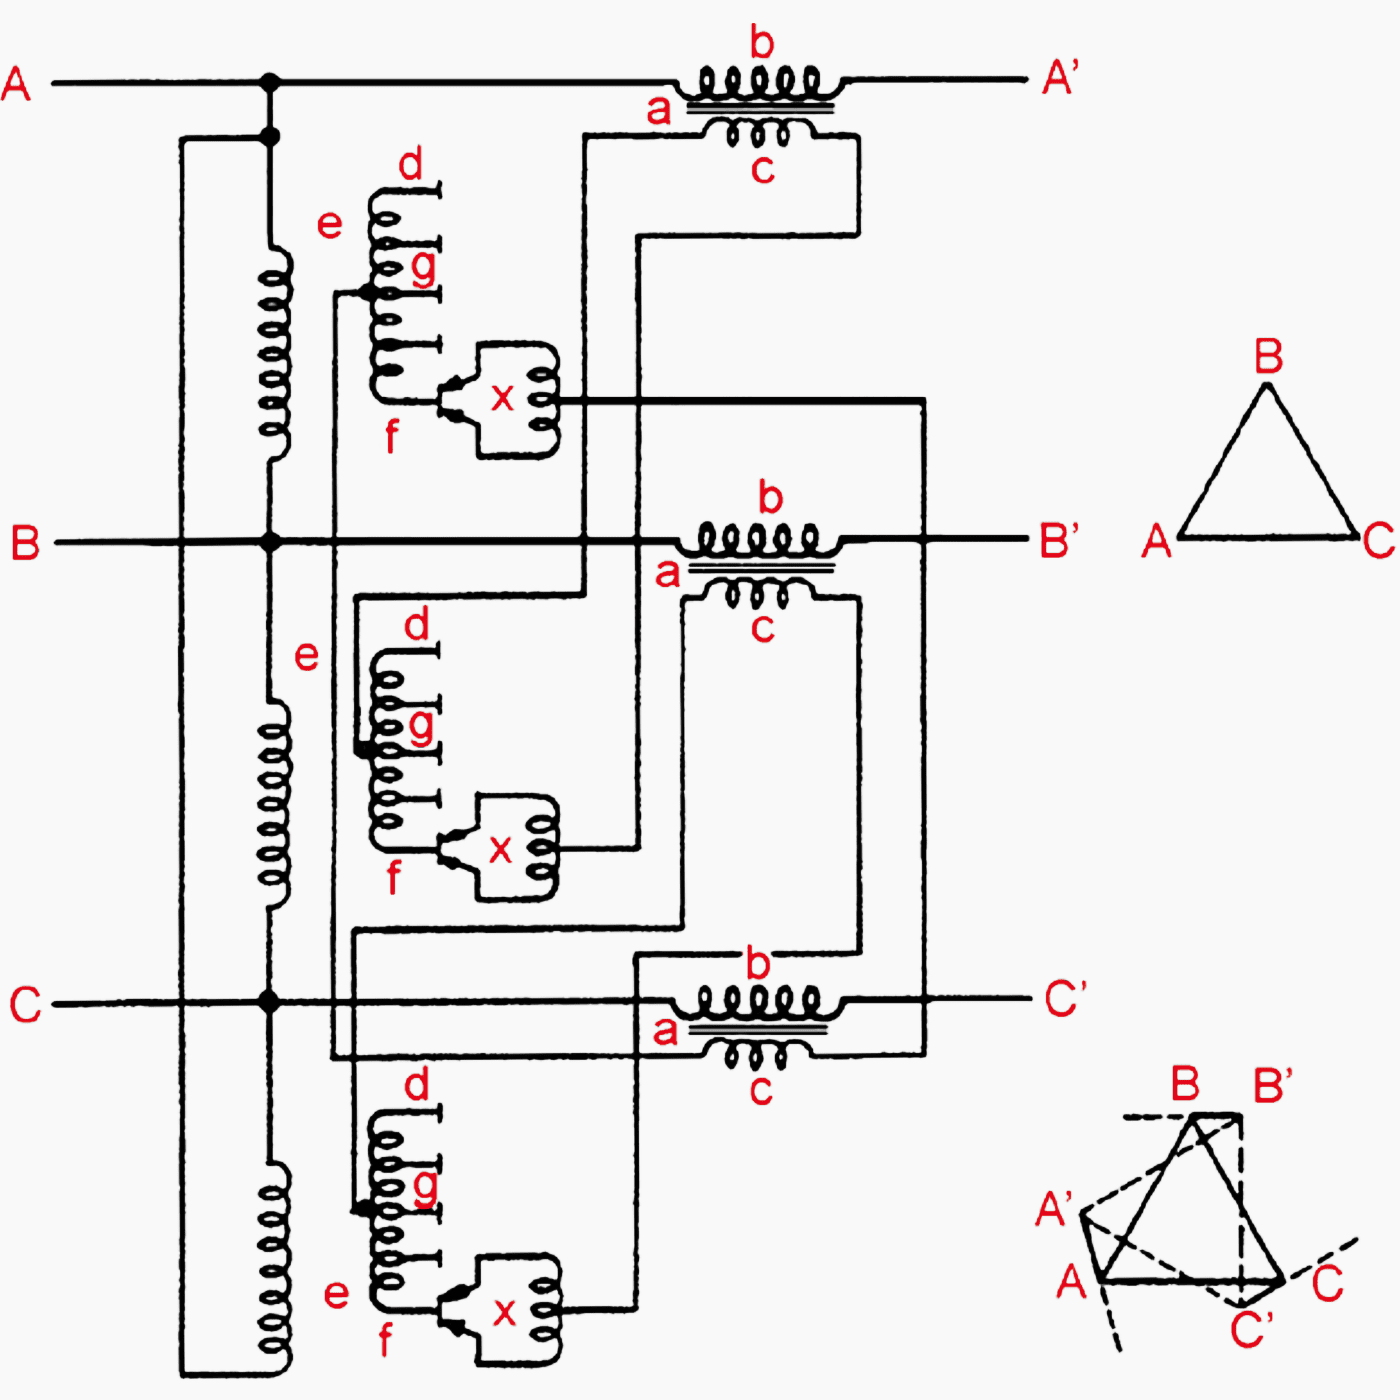 Voltage Regulators Used To Control The Voltage At The End